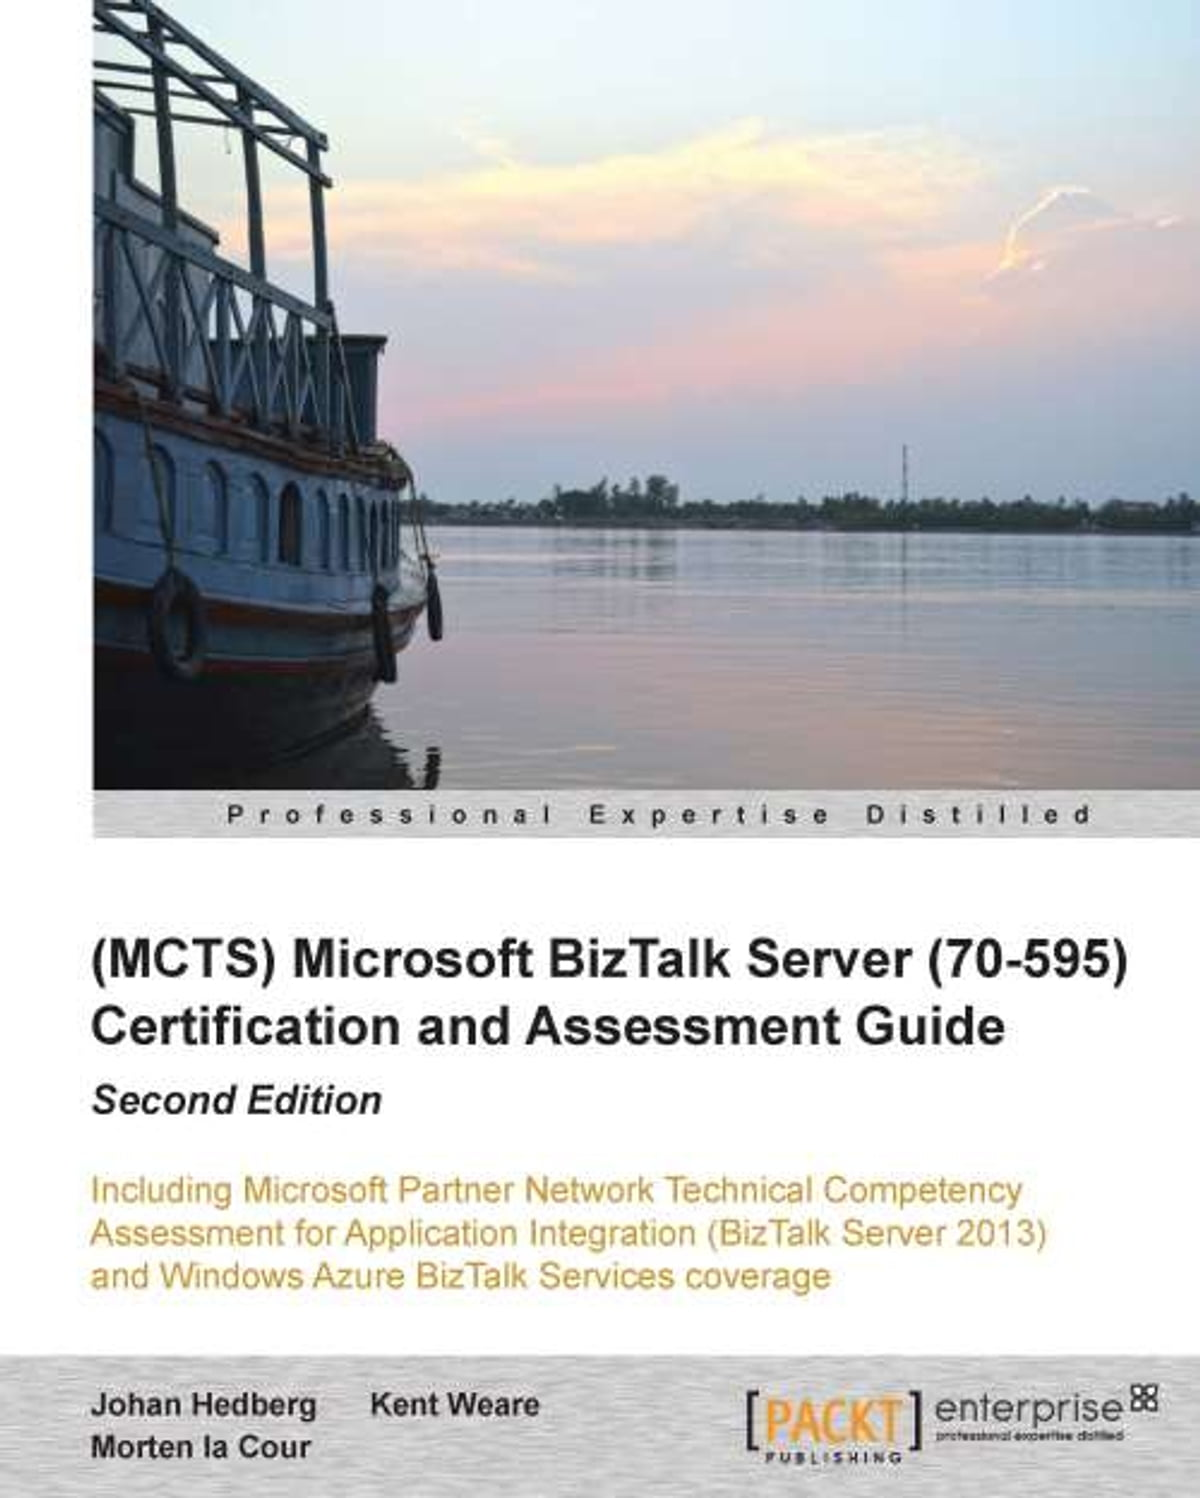 Mcts Microsoft Biztalk Server 70 595 Certification And Assessment